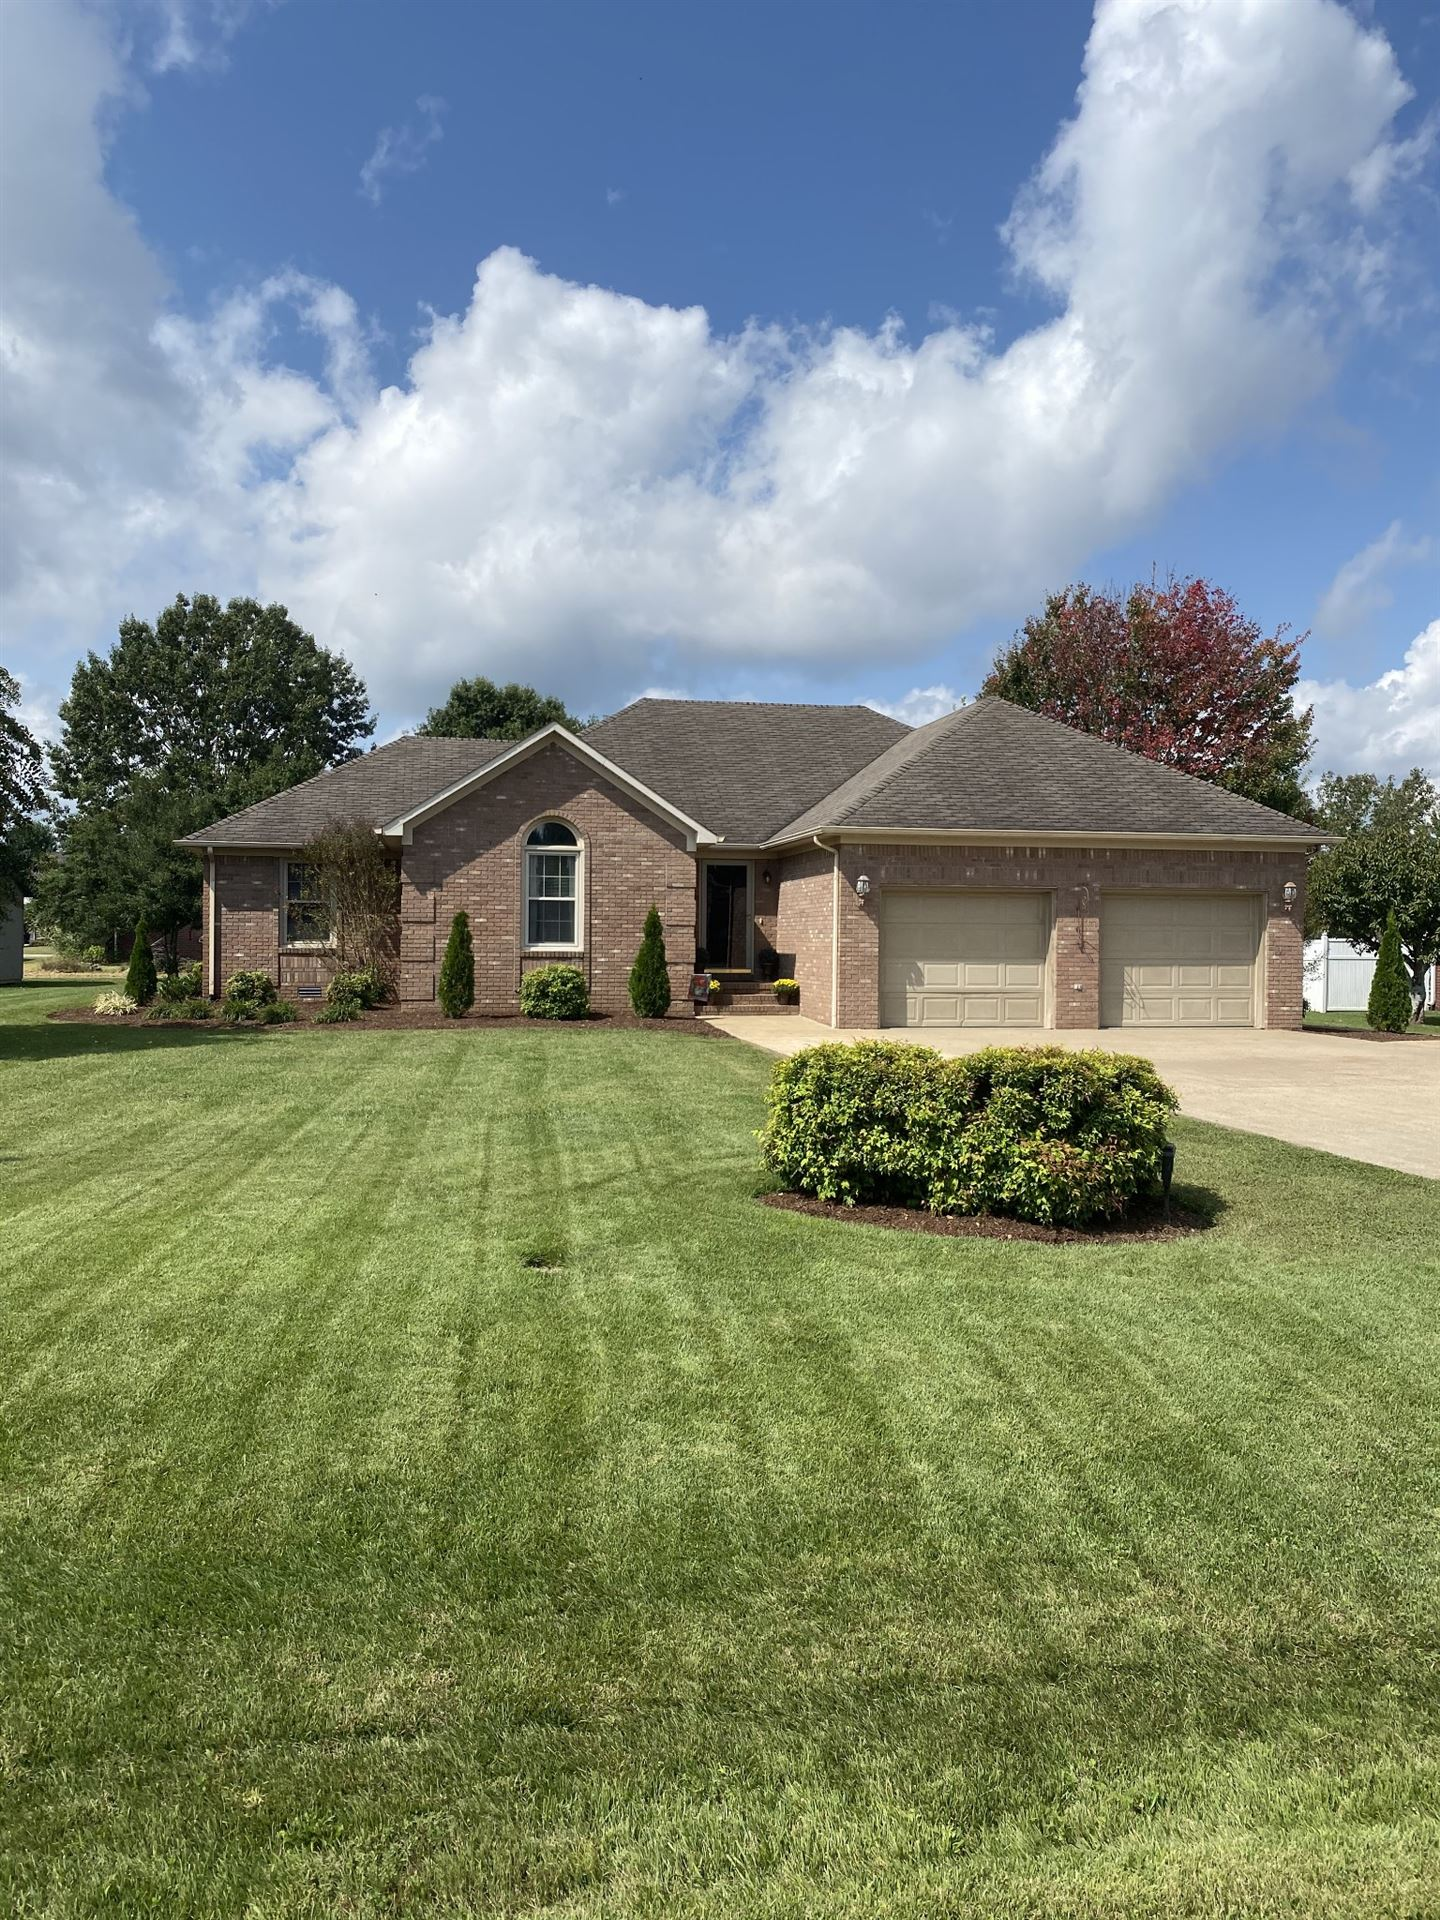 567 Cedar Ct, Lawrenceburg, TN 38464 - MLS#: 2193166